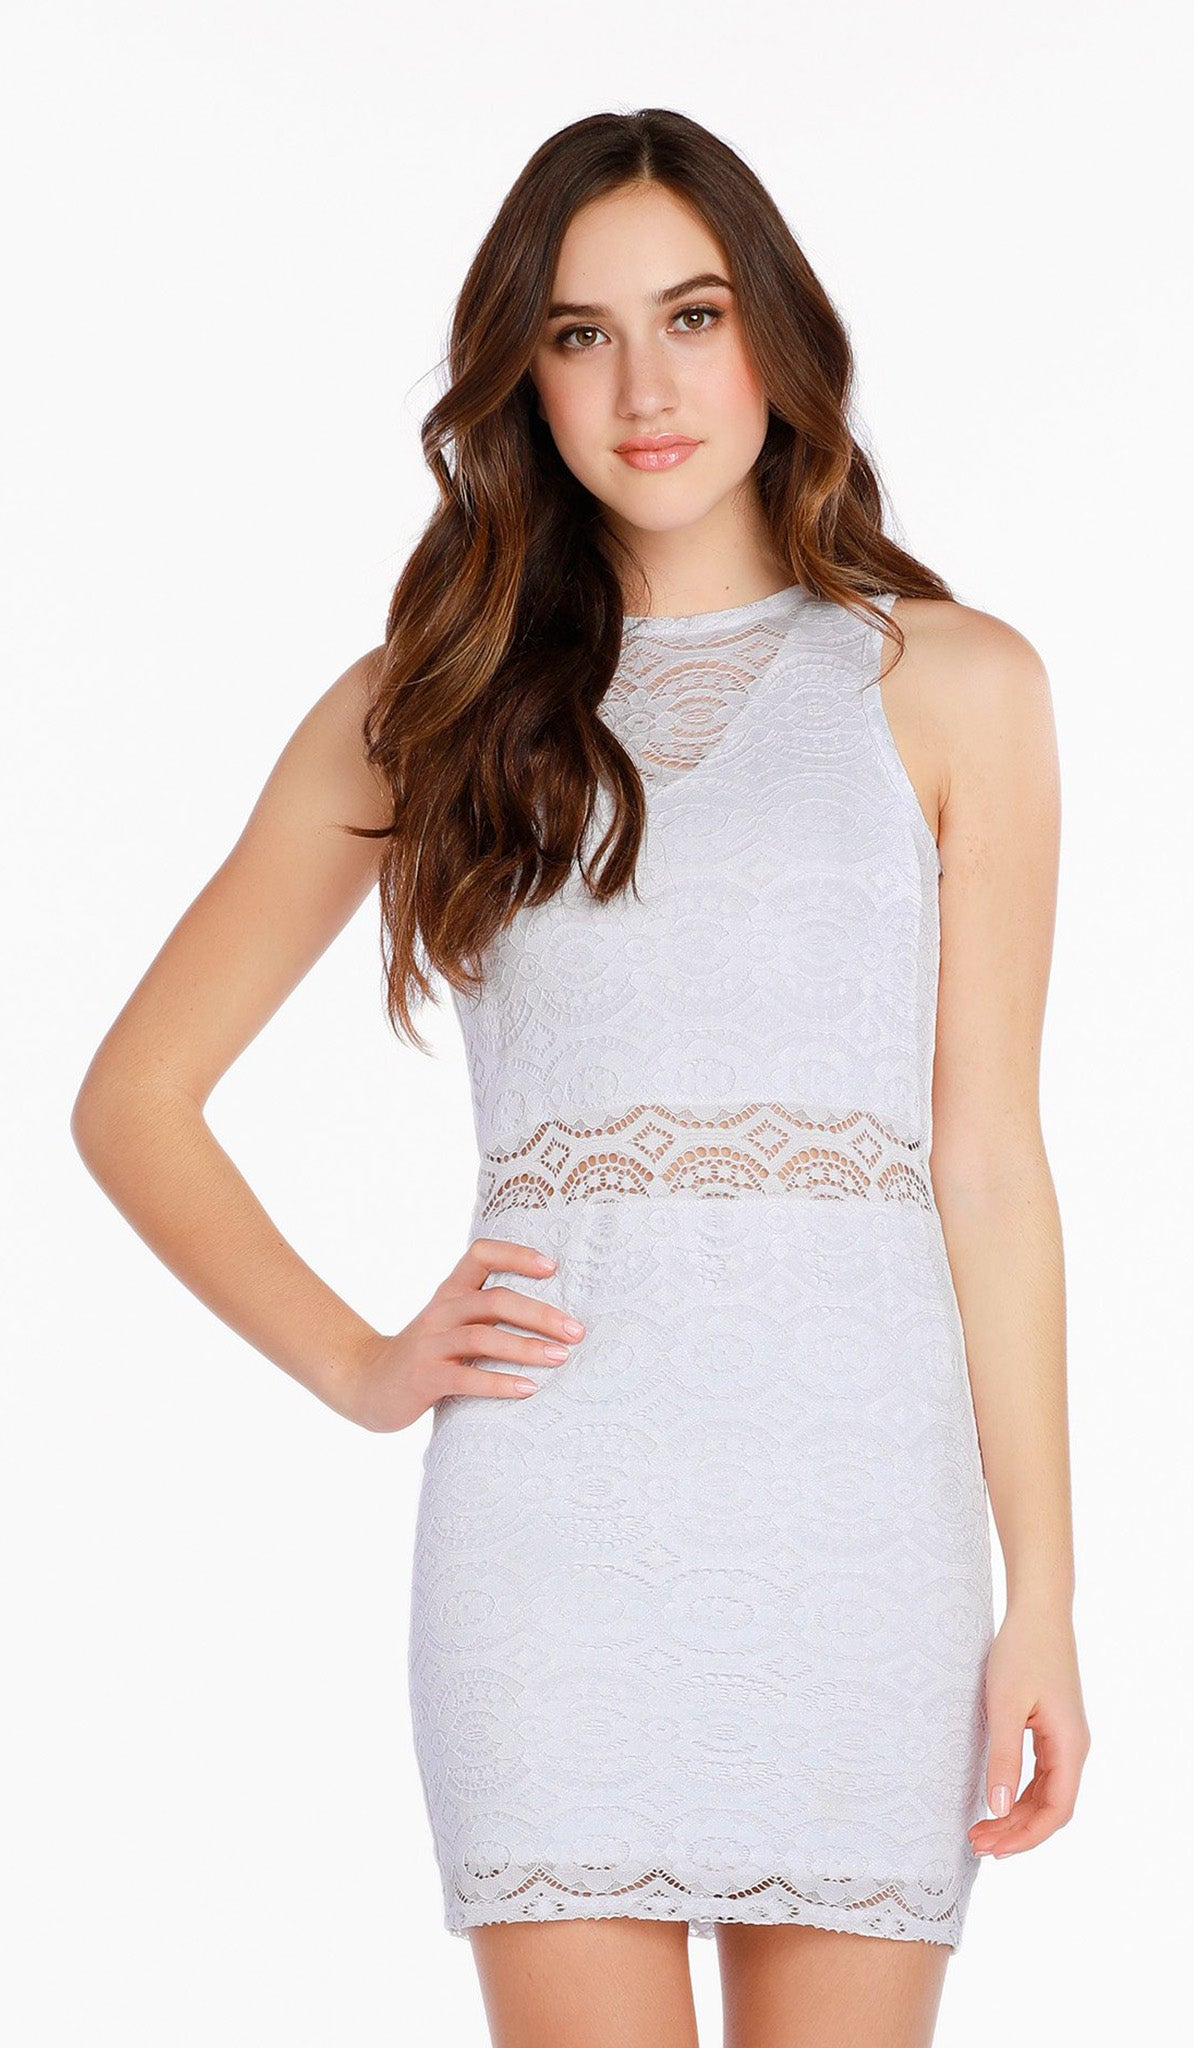 THE ADRIANA DRESS (JUNIORS) - Sallymiller.com - [variant title] - | Event & Party Dresses for Tween Girls & Juniors | Weddings Dresses, Bat Mitzvah Dresses, Sweet Sixteen Dresses, Graduation Dresses, Birthday Party Dresses, Bar Mitzvah Dresses, Cotillion Dresses